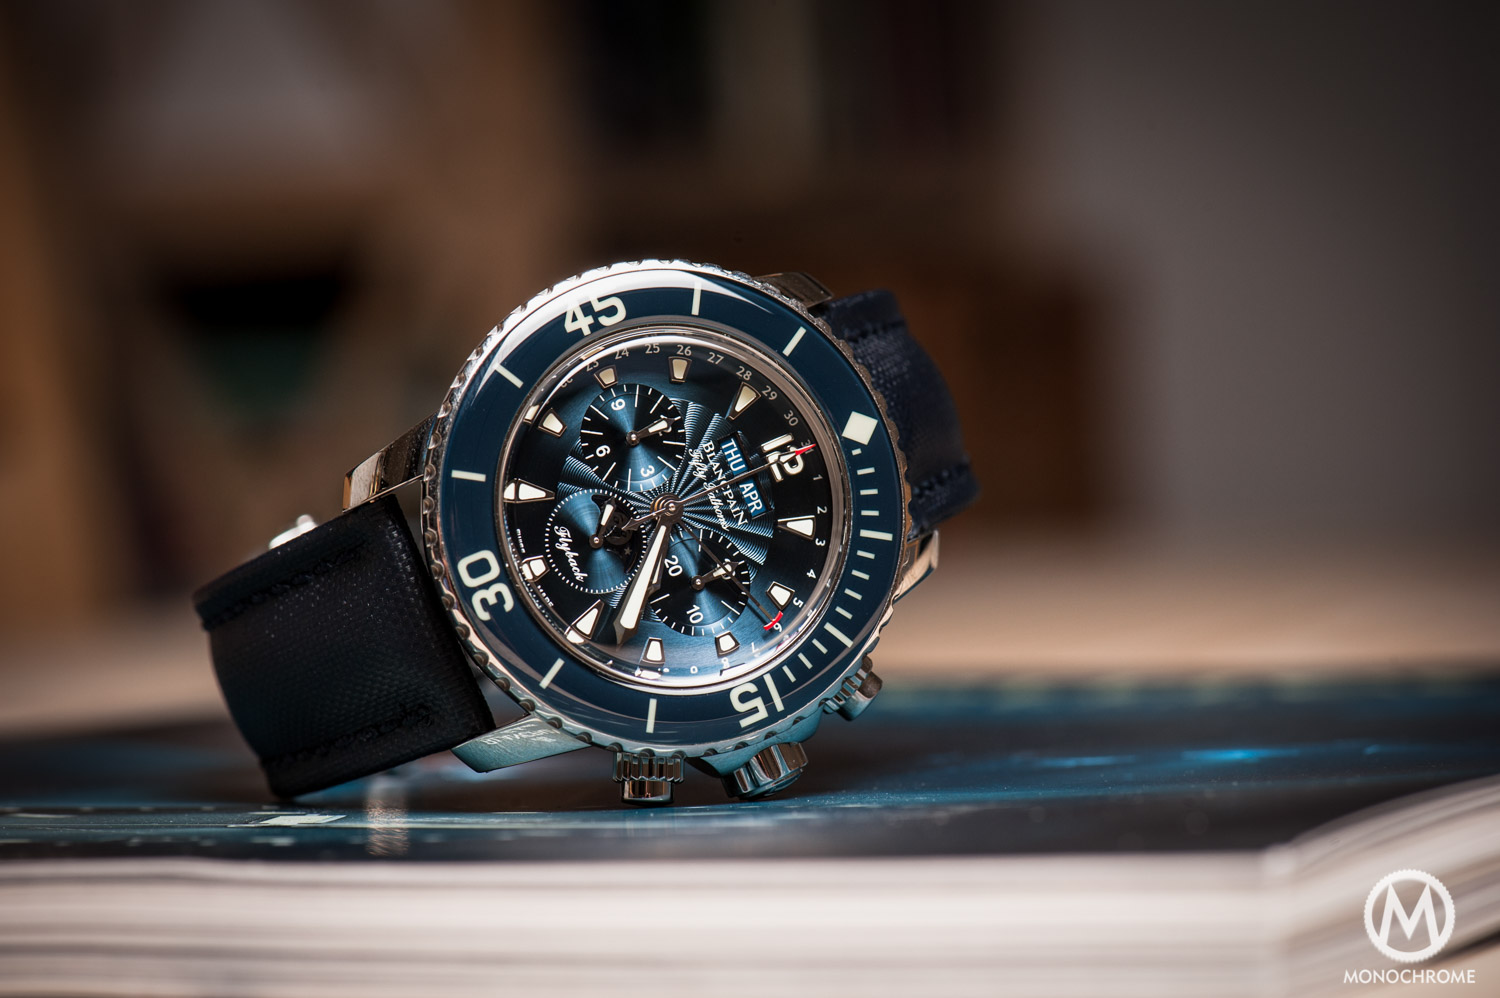 Blancpain Fifty Fathoms >> The Collector's Series - Diving deep with Mark's Blancpain Fifty Fathoms Chronographe Flyback ...